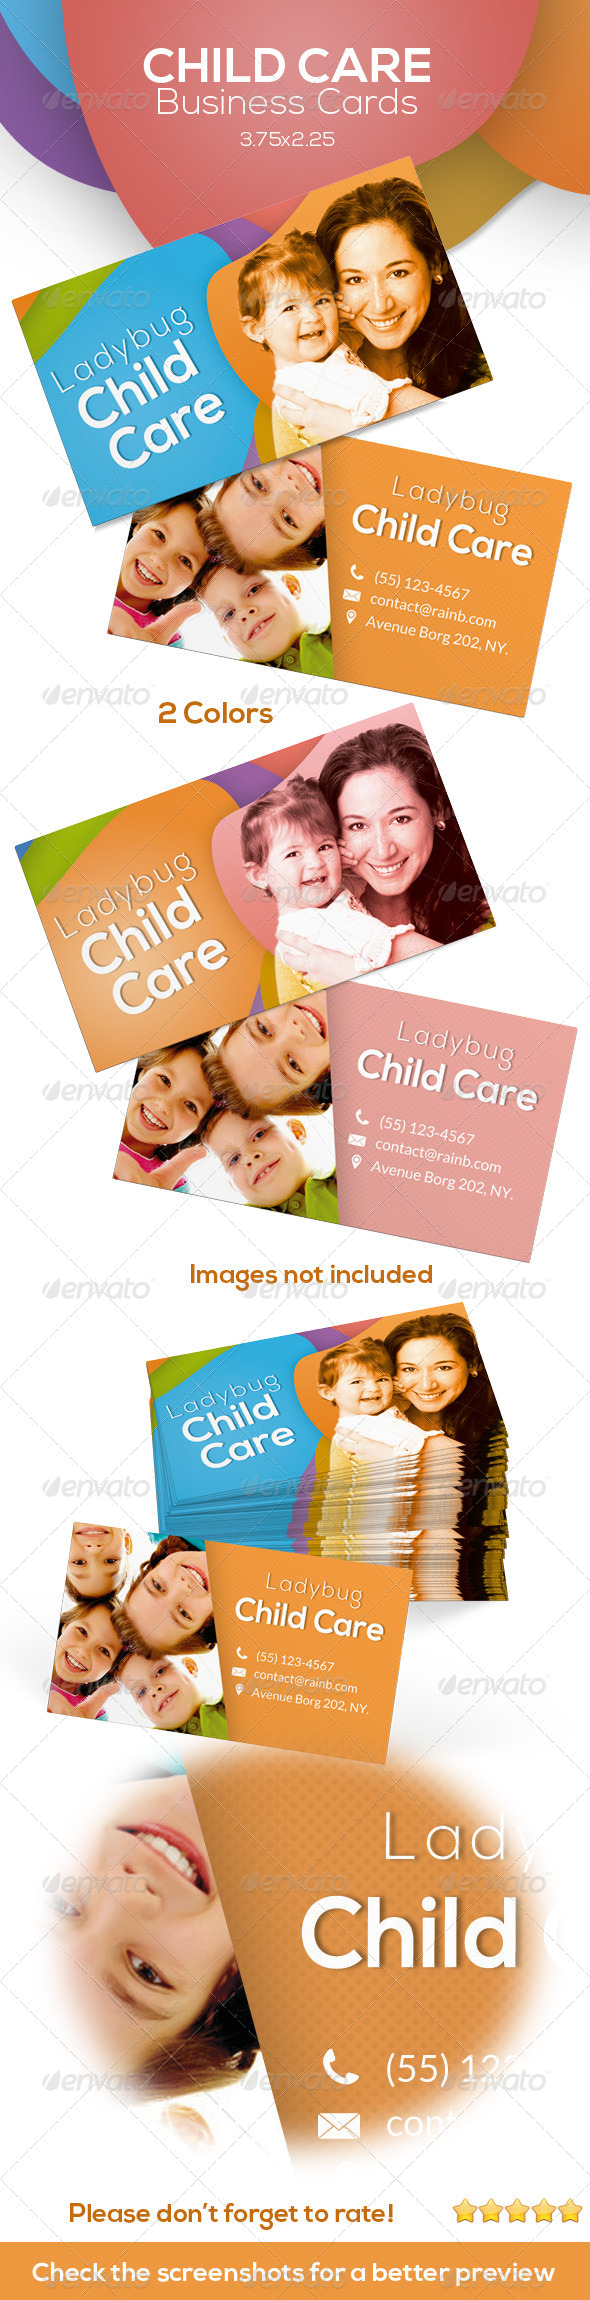 GraphicRiver Child Care Business Cards 6210058